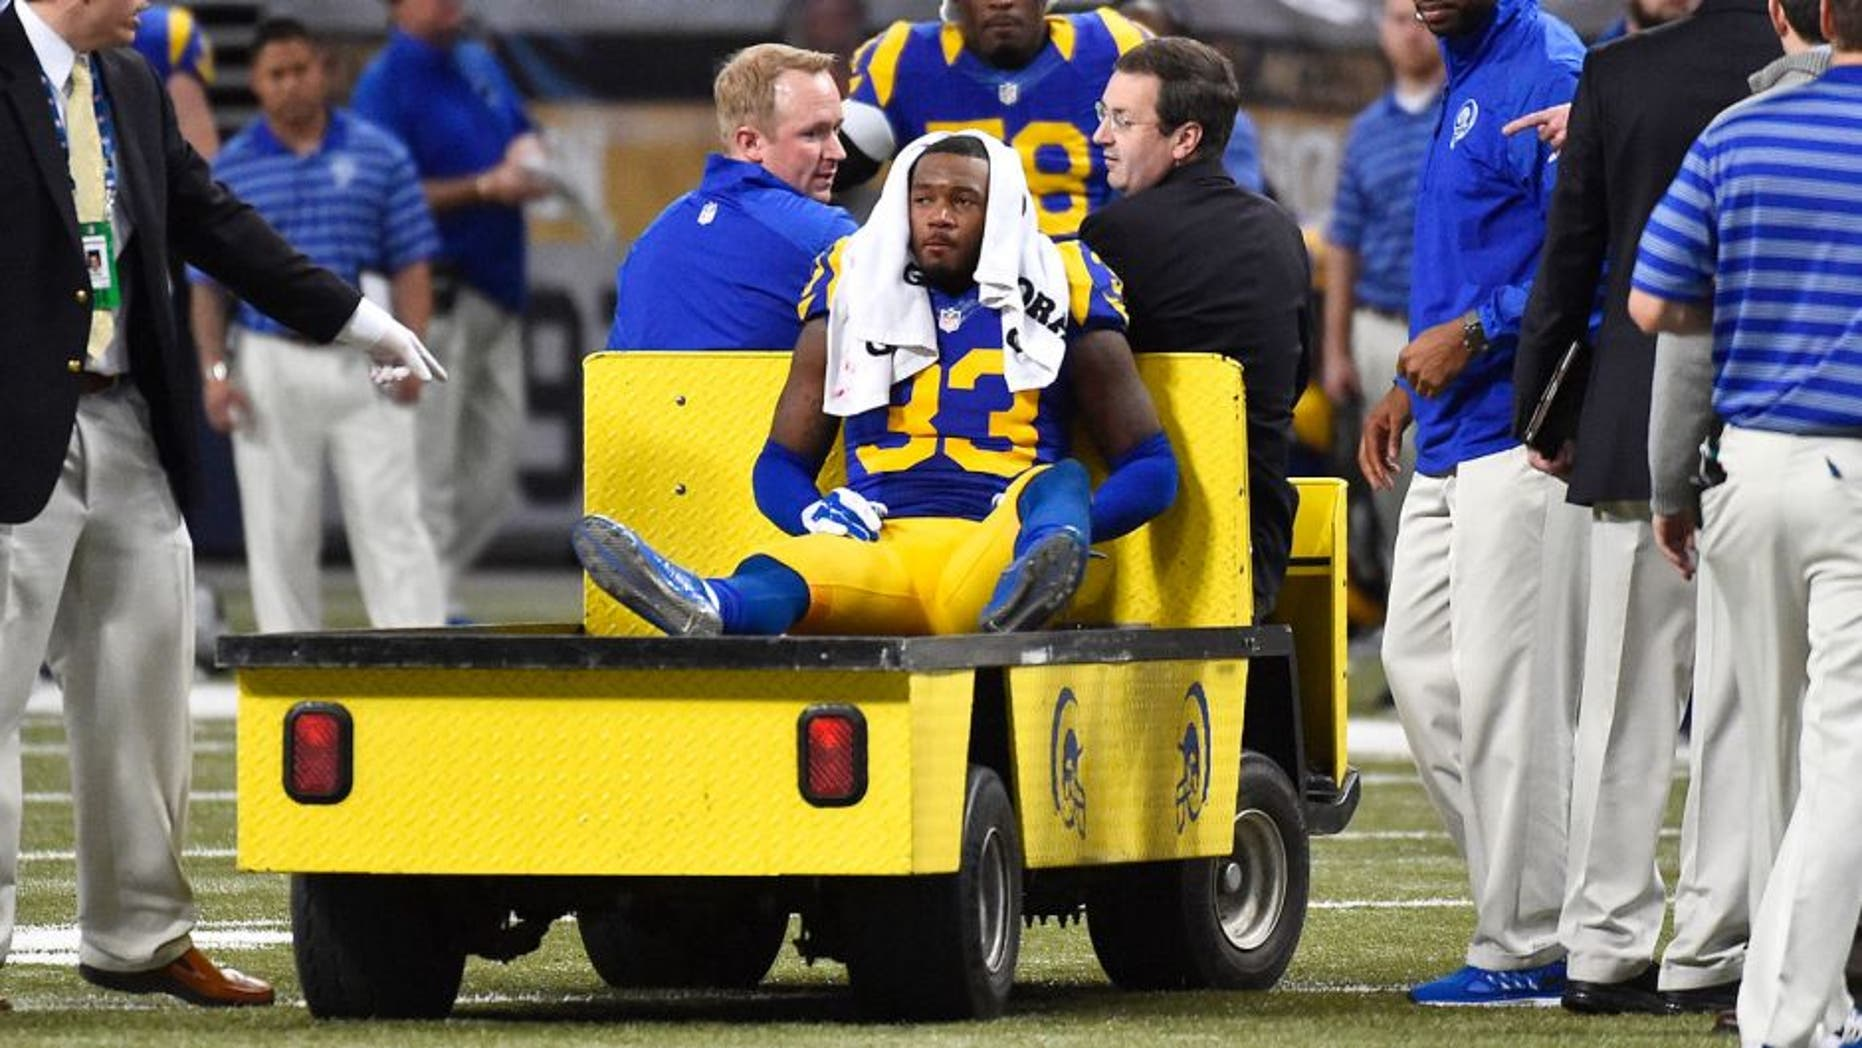 Dec 21, 2014; St. Louis, MO, USA; St. Louis Rams cornerback E.J. Gaines (33) is carted off the field after being injured against the New York Giants during the second half at the Edward Jones Dome. The New York Giants defeat the St. Louis Rams 37-27. Mandatory Credit: Jasen Vinlove-USA TODAY Sports